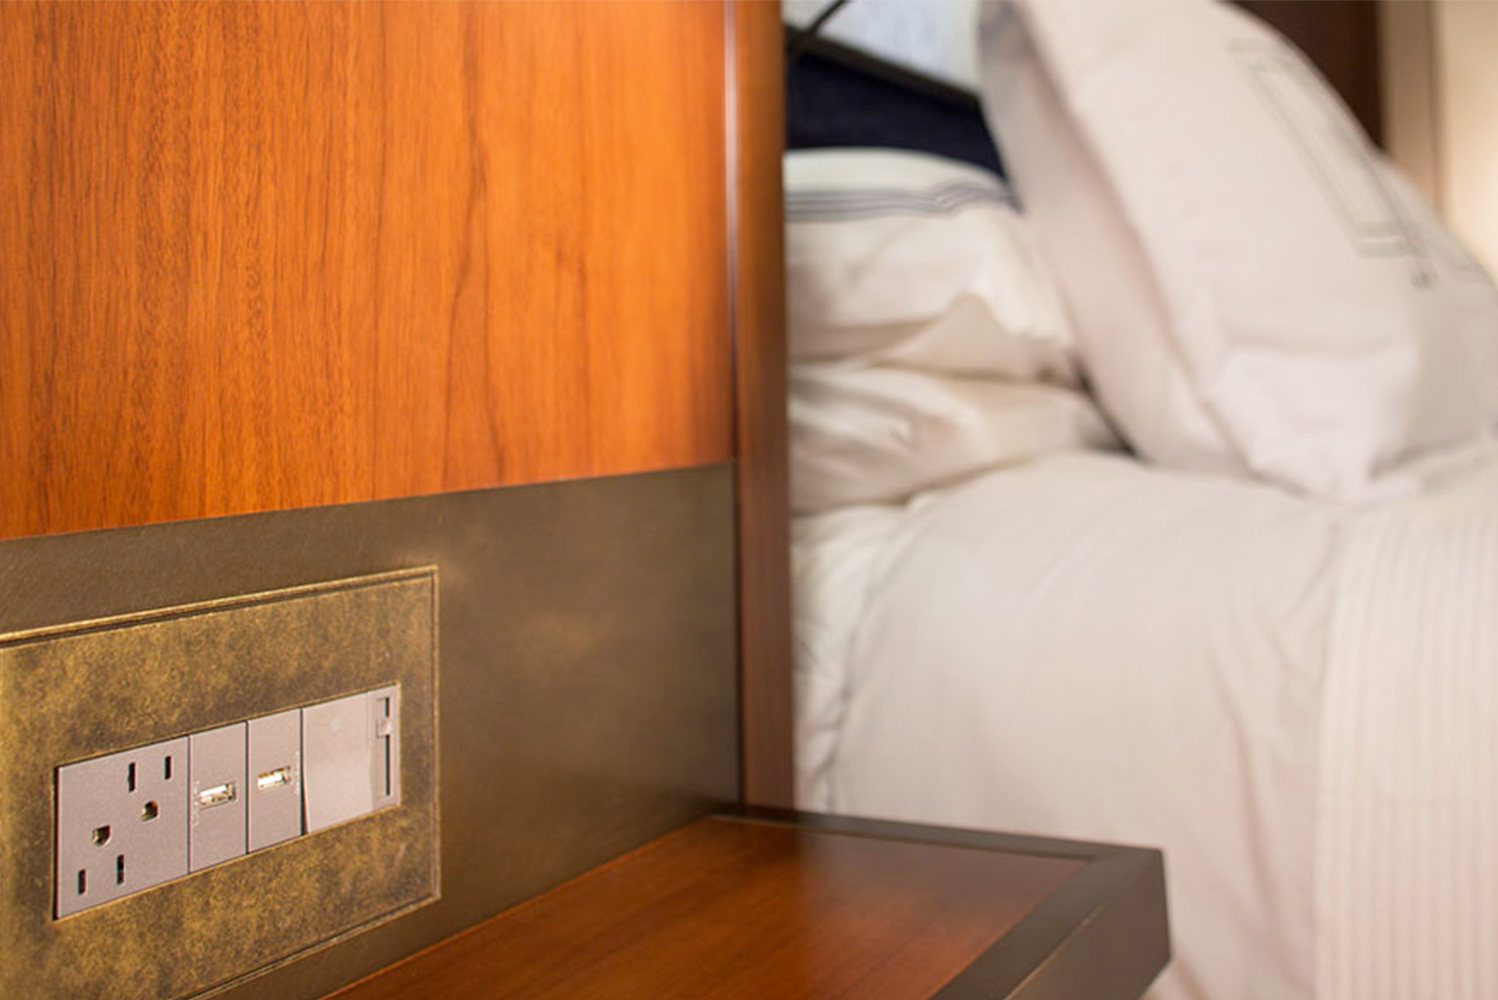 Legrand launched the Furniture power center by adorne, which incorporates electrical outlets and USB charging installed into the headboard or other in-room furniture units.